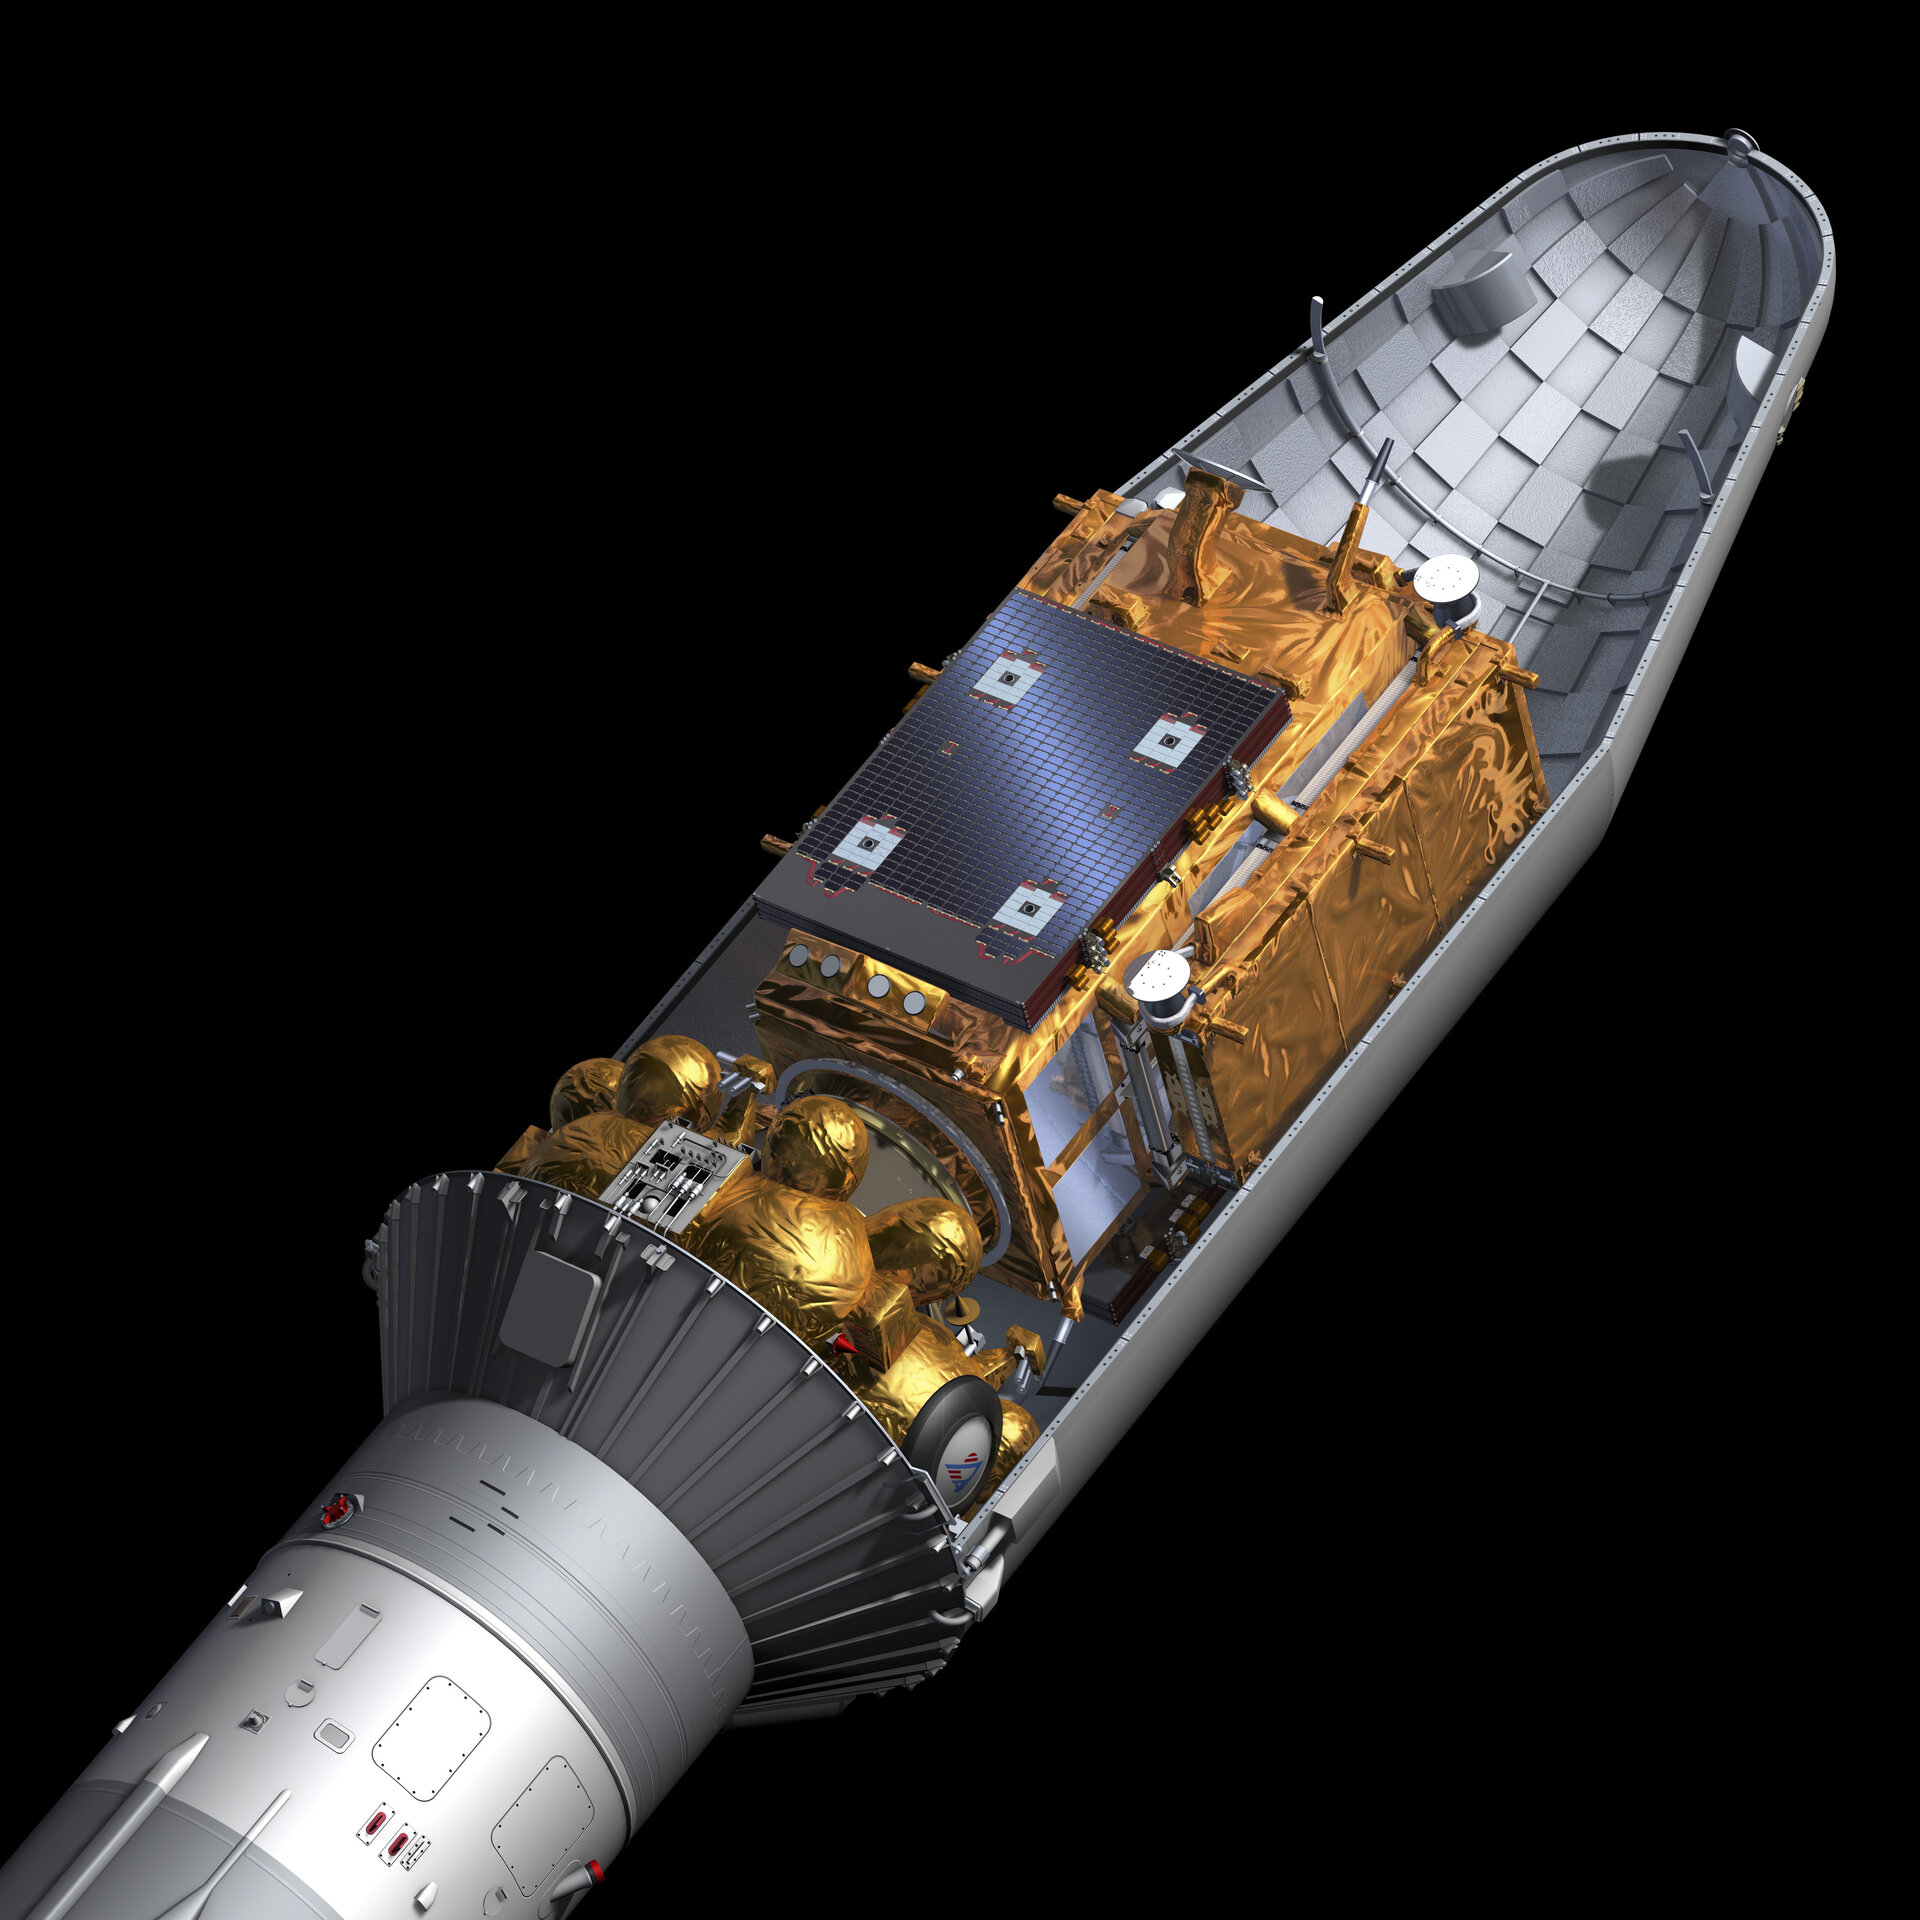 Cut open view of the Soyuz rocket carrying Sentinel-1A satellite